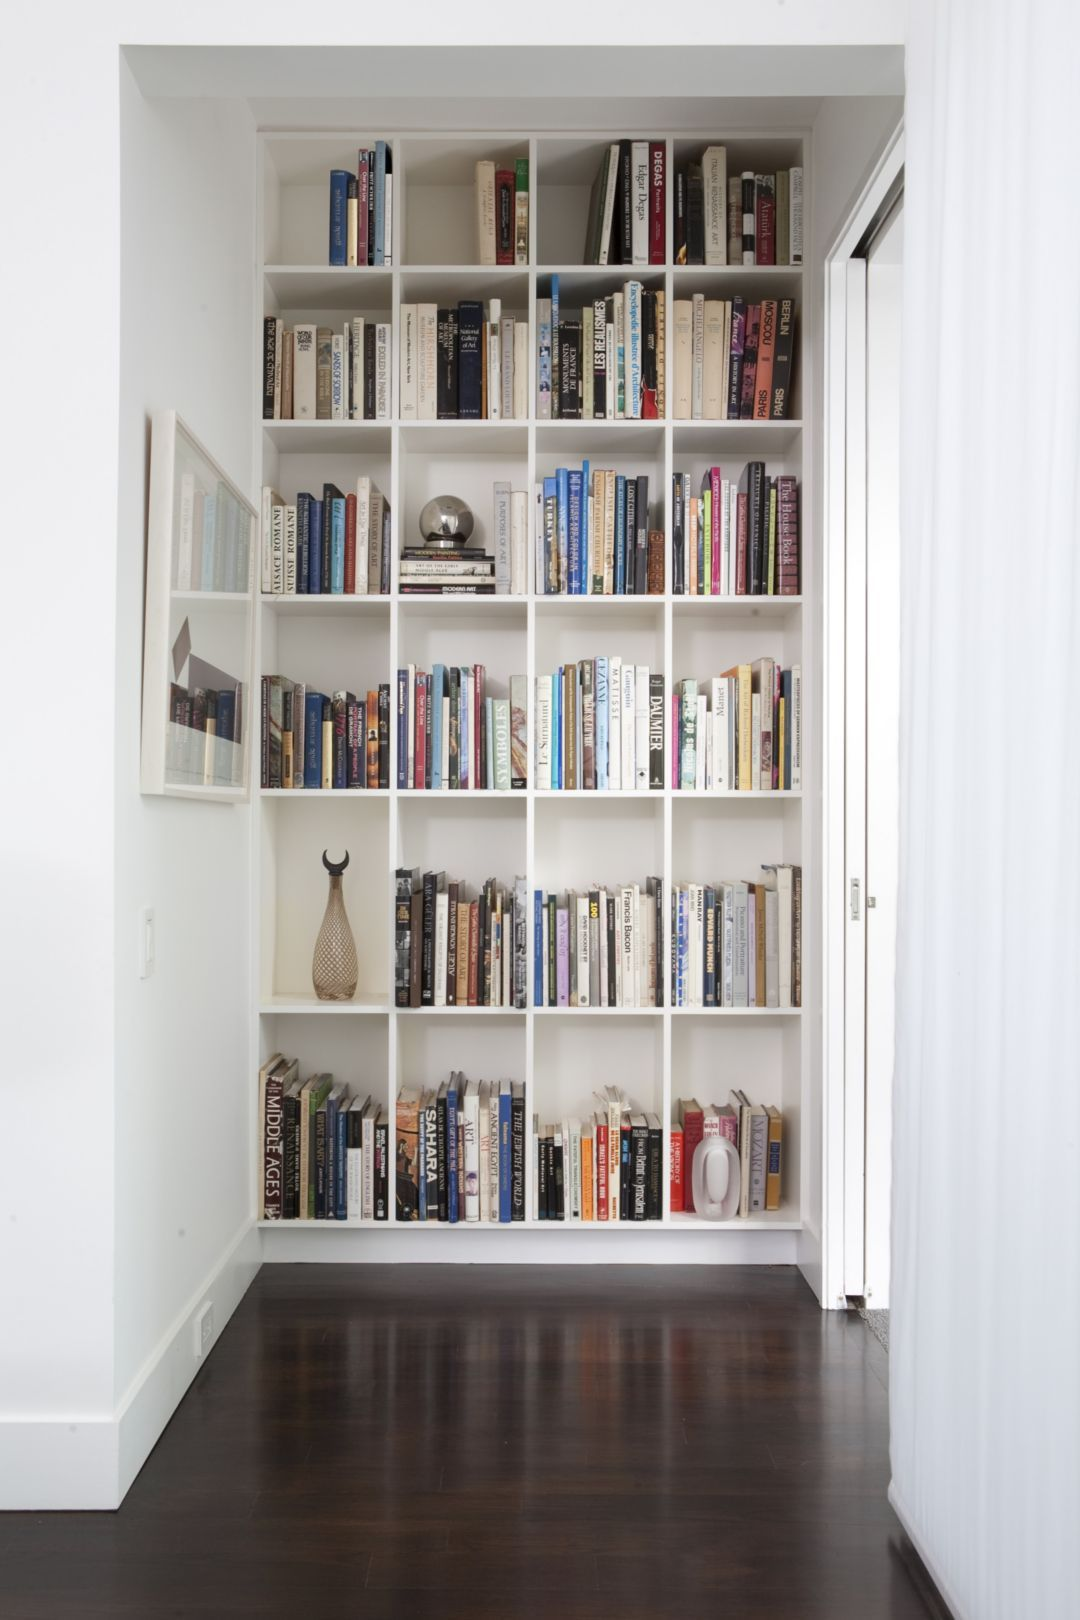 Books At Home: egg-crate shelves  |Egg Crate Shelving